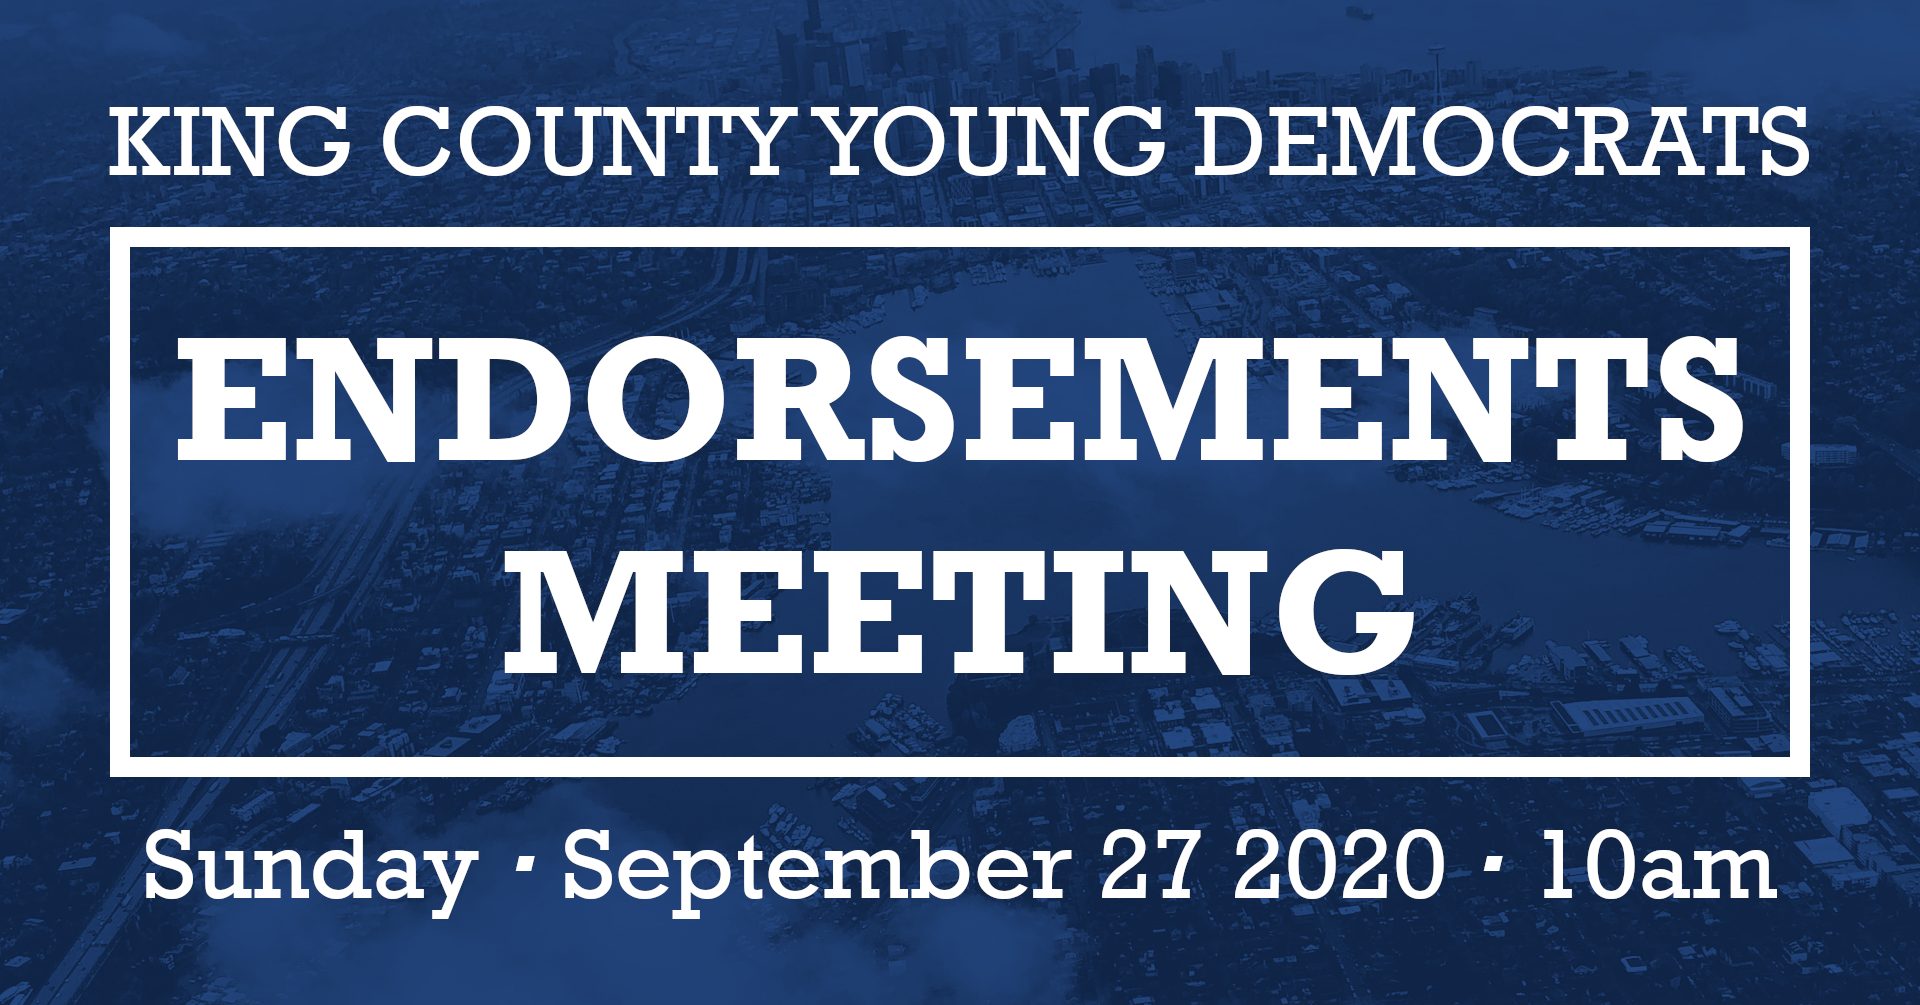 King County Young Endorsements Meeting. Sunday, September 27 2020 at 10 AM